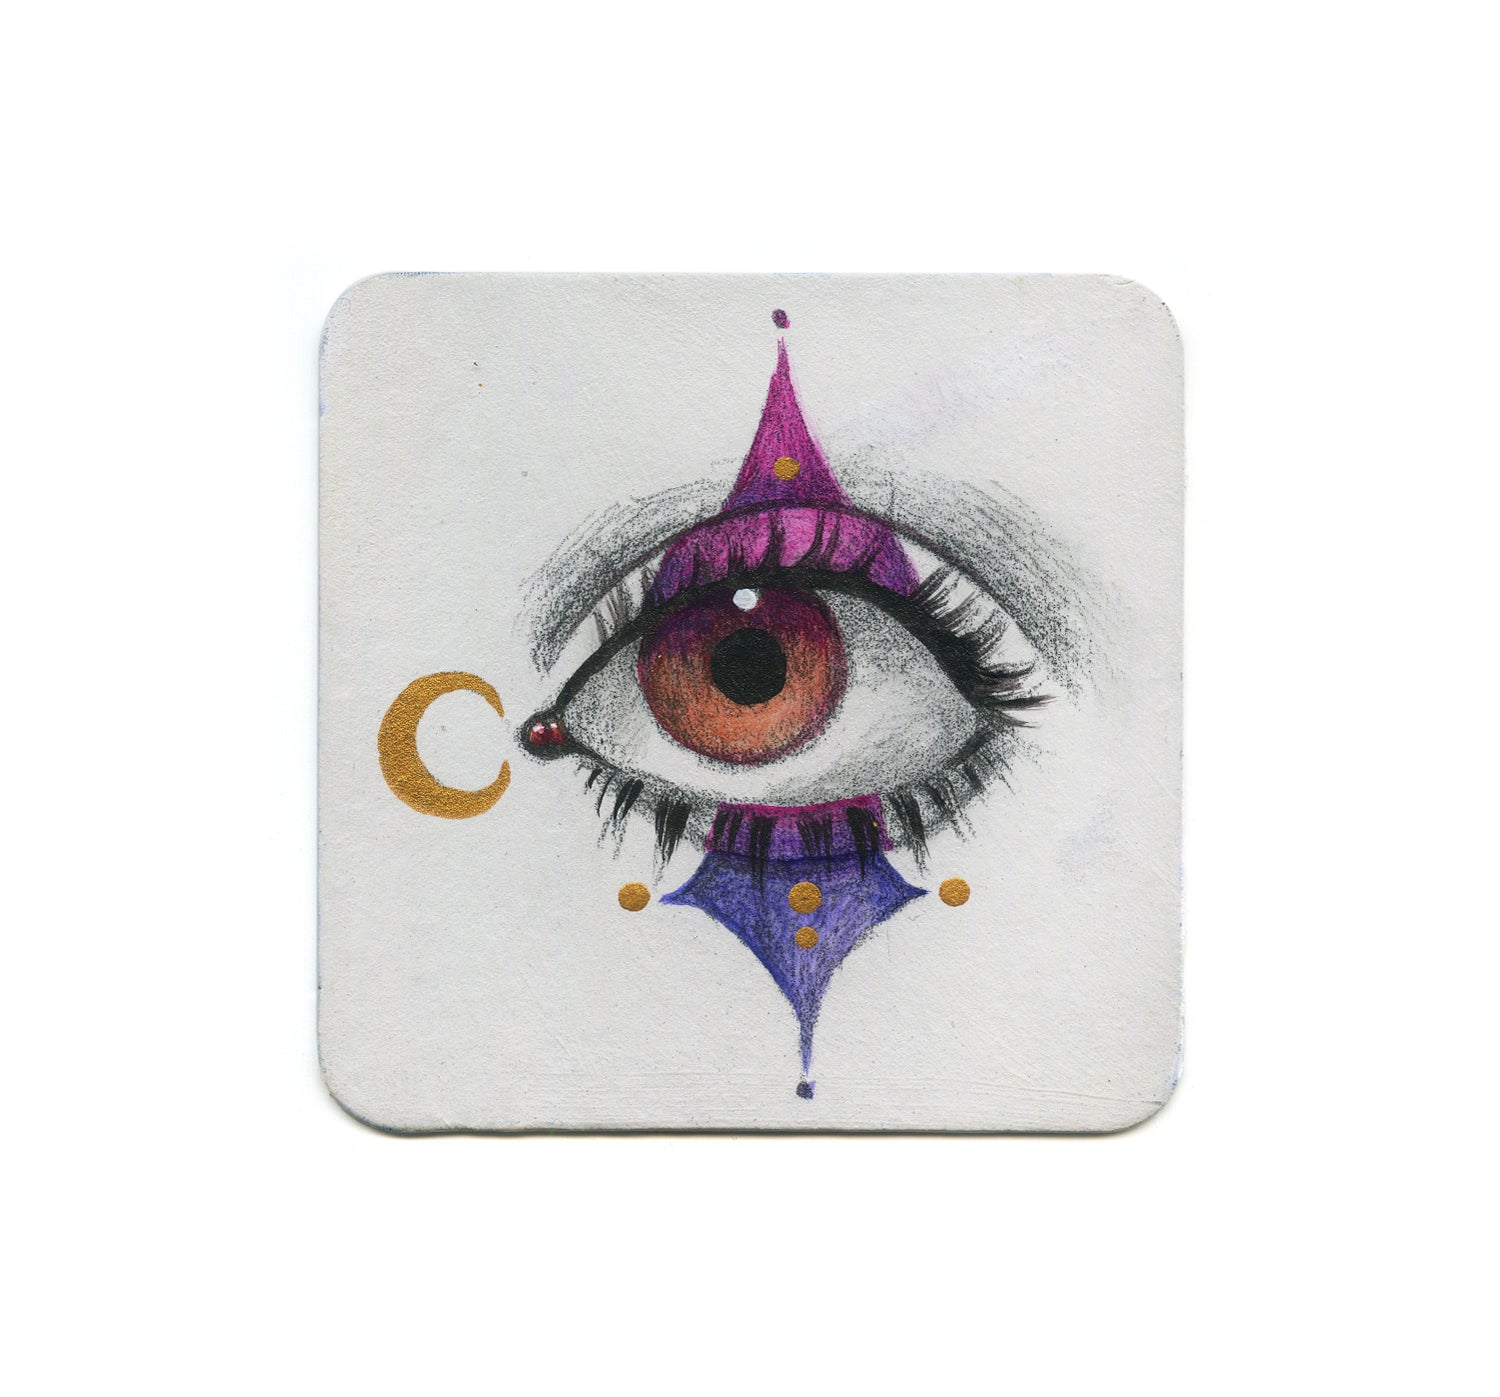 S2 Ruth Speer - Diana II Coaster